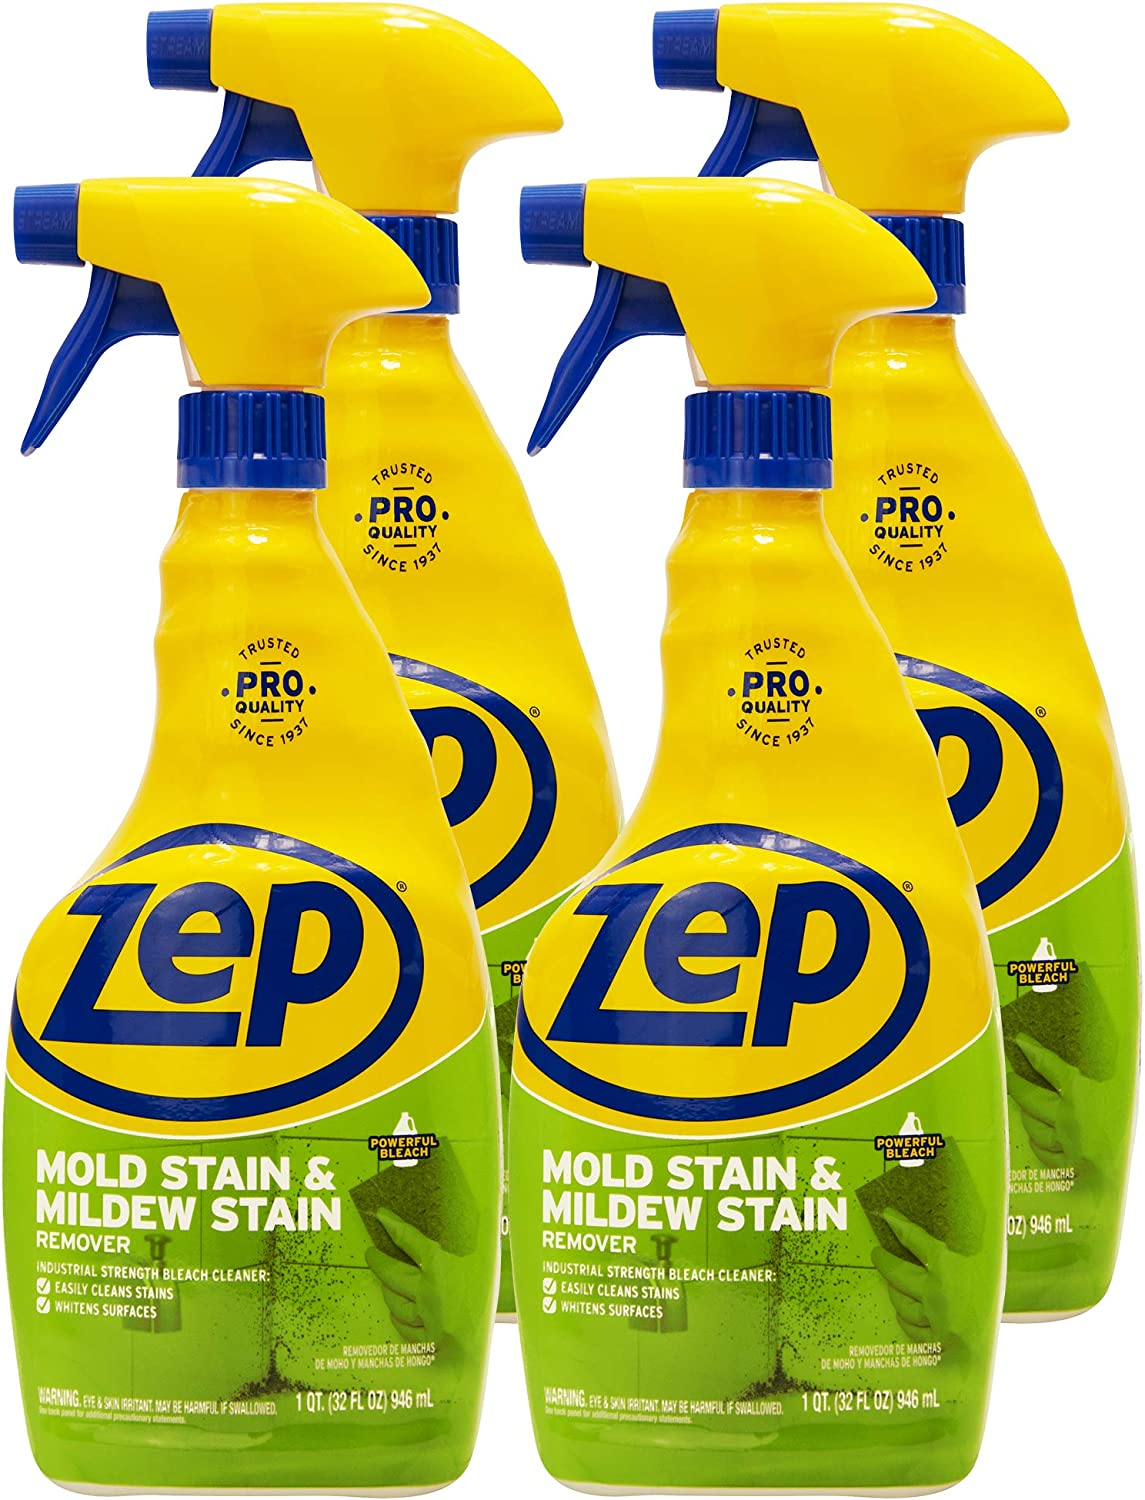 Zep Mold Stain and Mildew Stain Remover 32 Ounce ZUMILDEW32 (Case of 4)